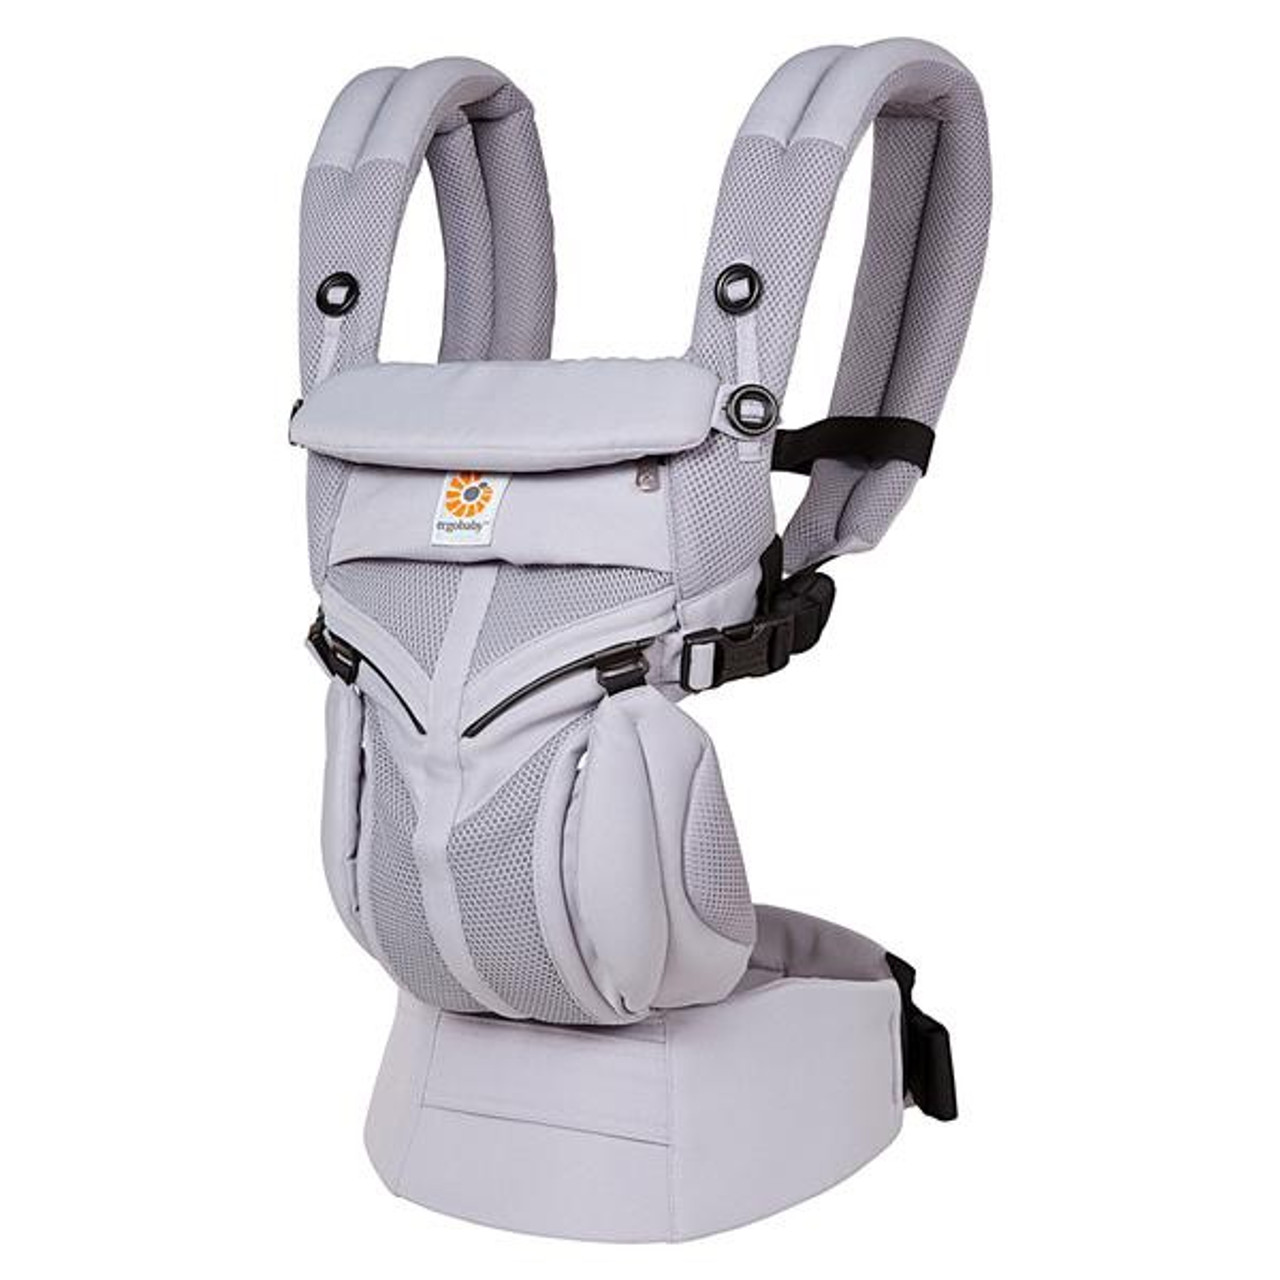 Ergobaby OMNI 360 Baby Carrier All in One Cool Air Mesh LILAC GREY at Baby Barn Discounts